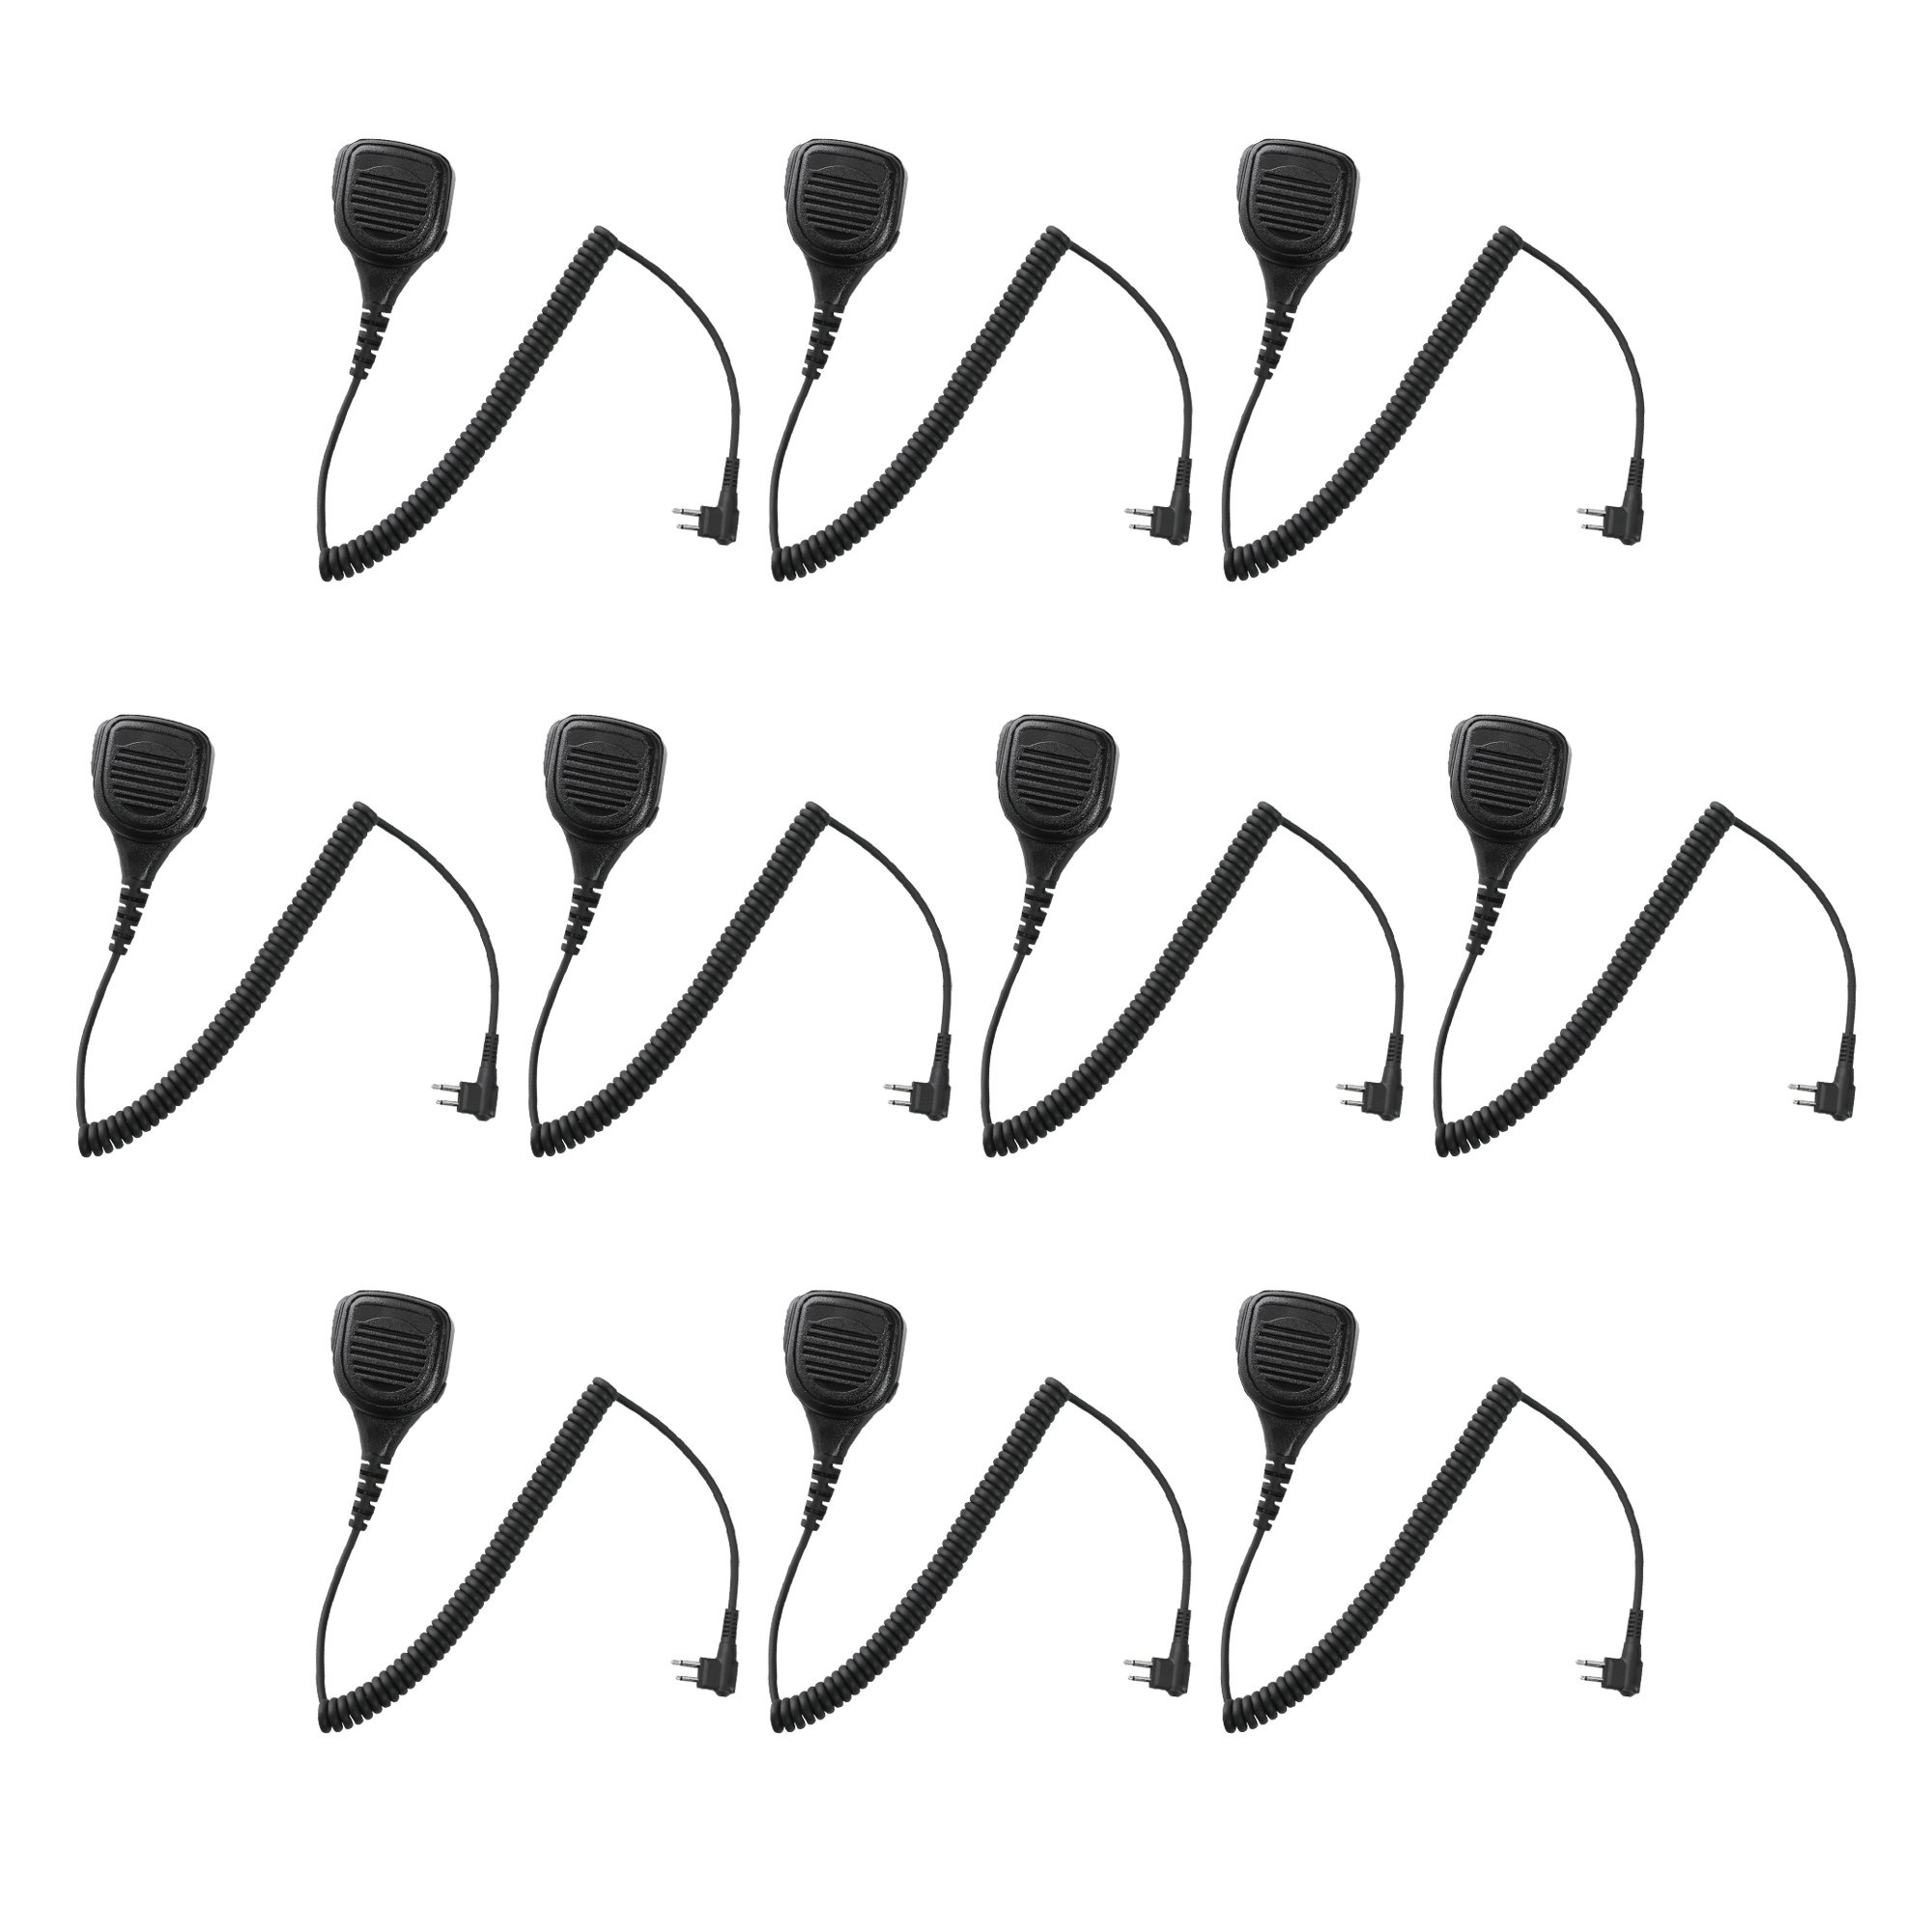 10 Pack Maxtop APM250-H1 IP56 Waterproof Shoulder Speaker Microphone for Hytera TC-446S TC-500 TC-518 TC-600 by MAXTOP